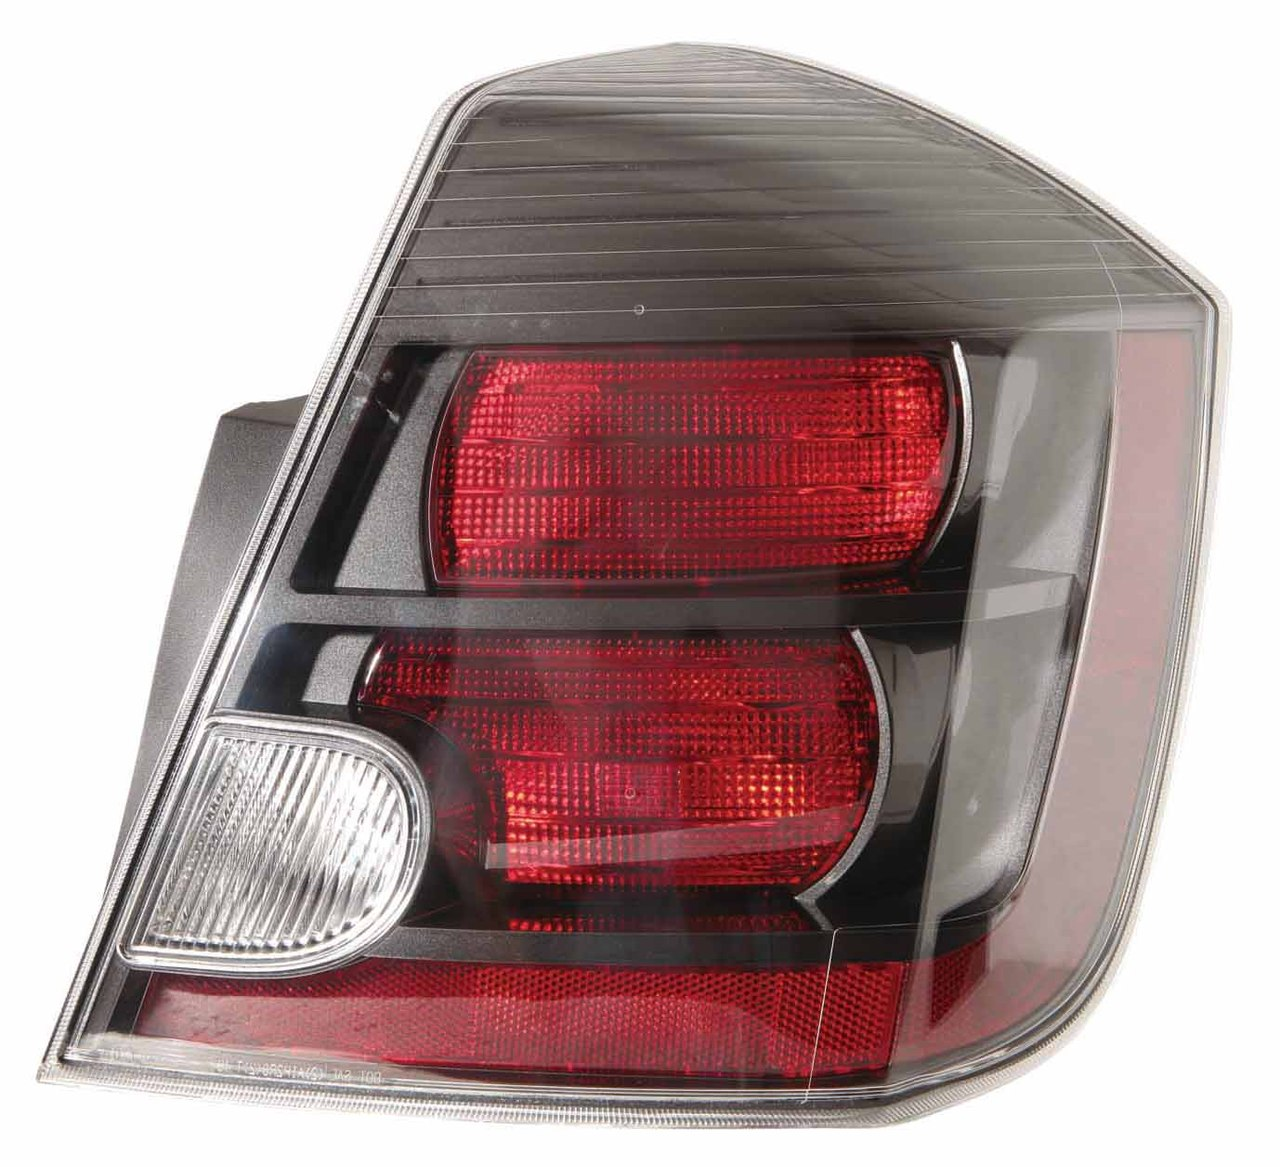 Nissan Sentra 2010 2011 2012 SR / SE-R tail light right passenger